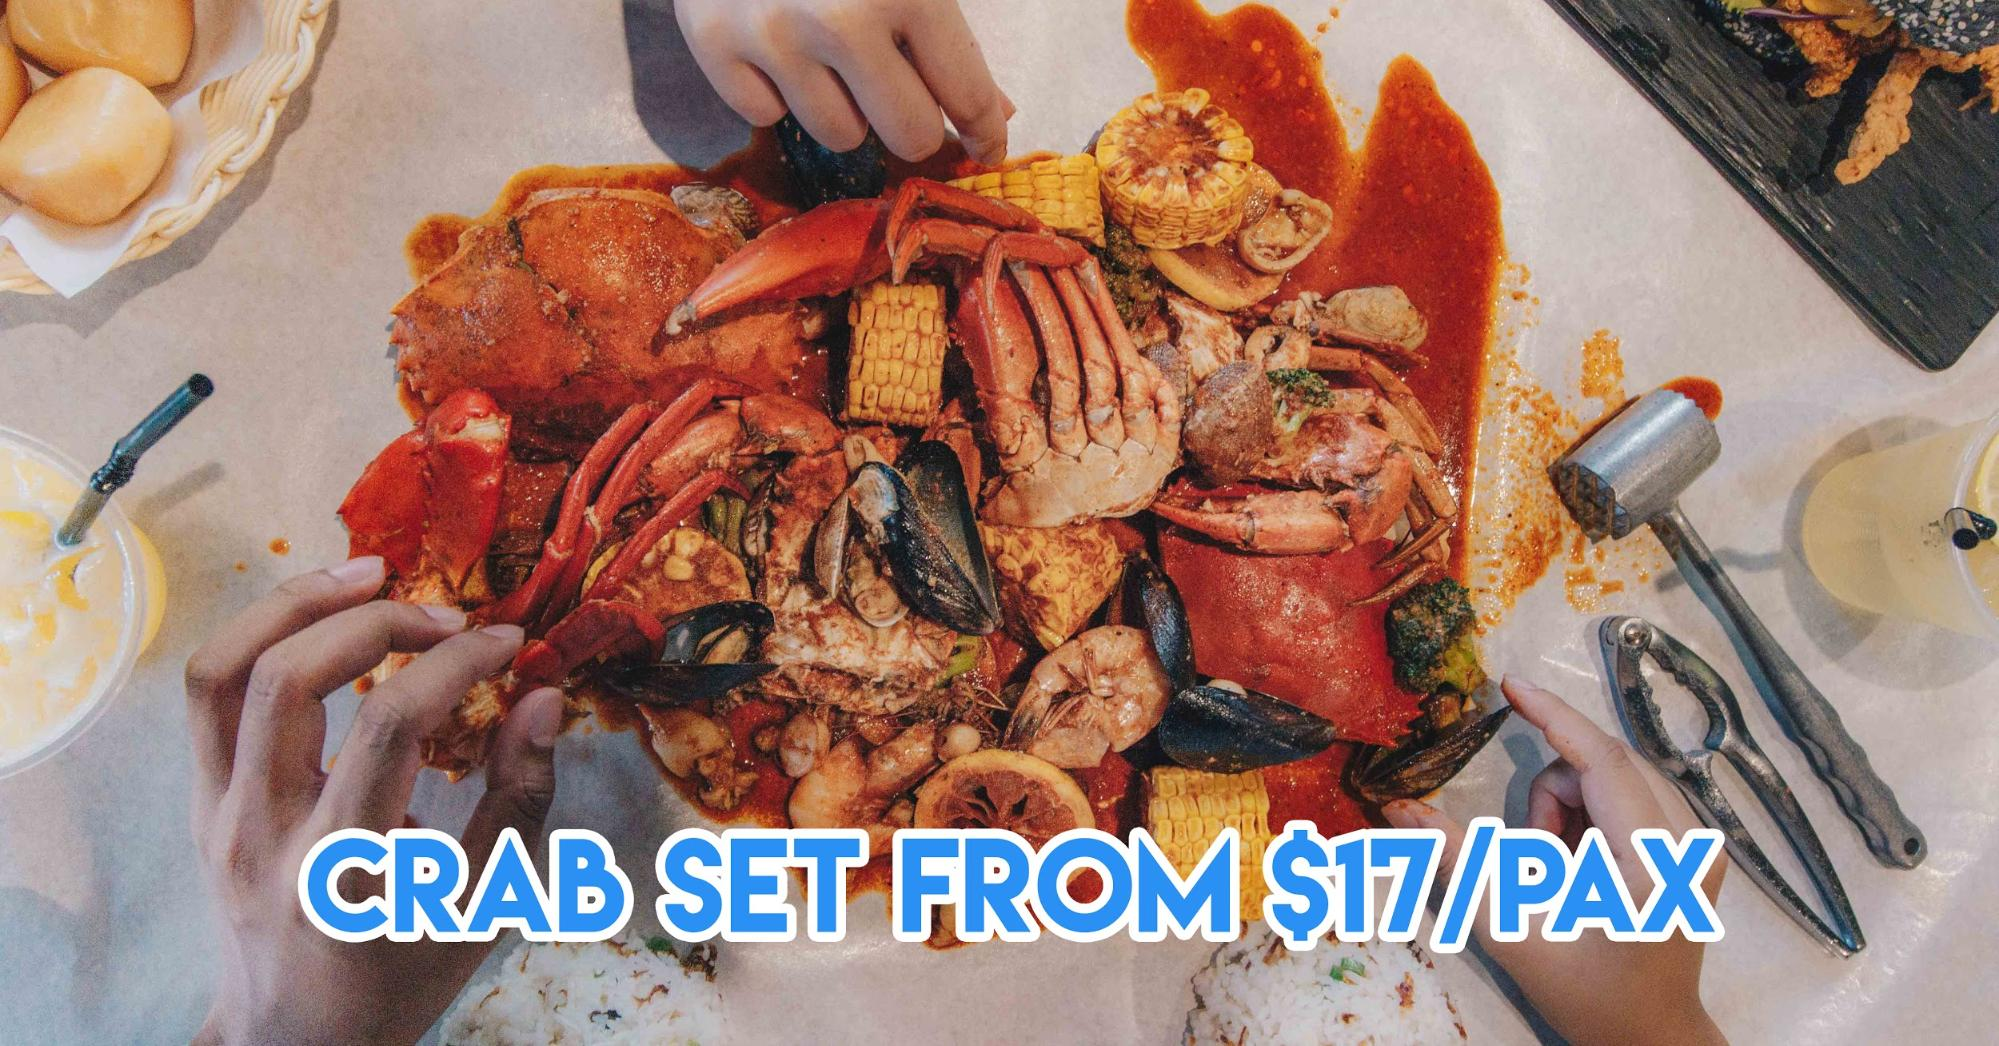 Crab Factory In JB Is An Affordable Halal Seafood Restaurant Just 20 Minutes From City Square Mall